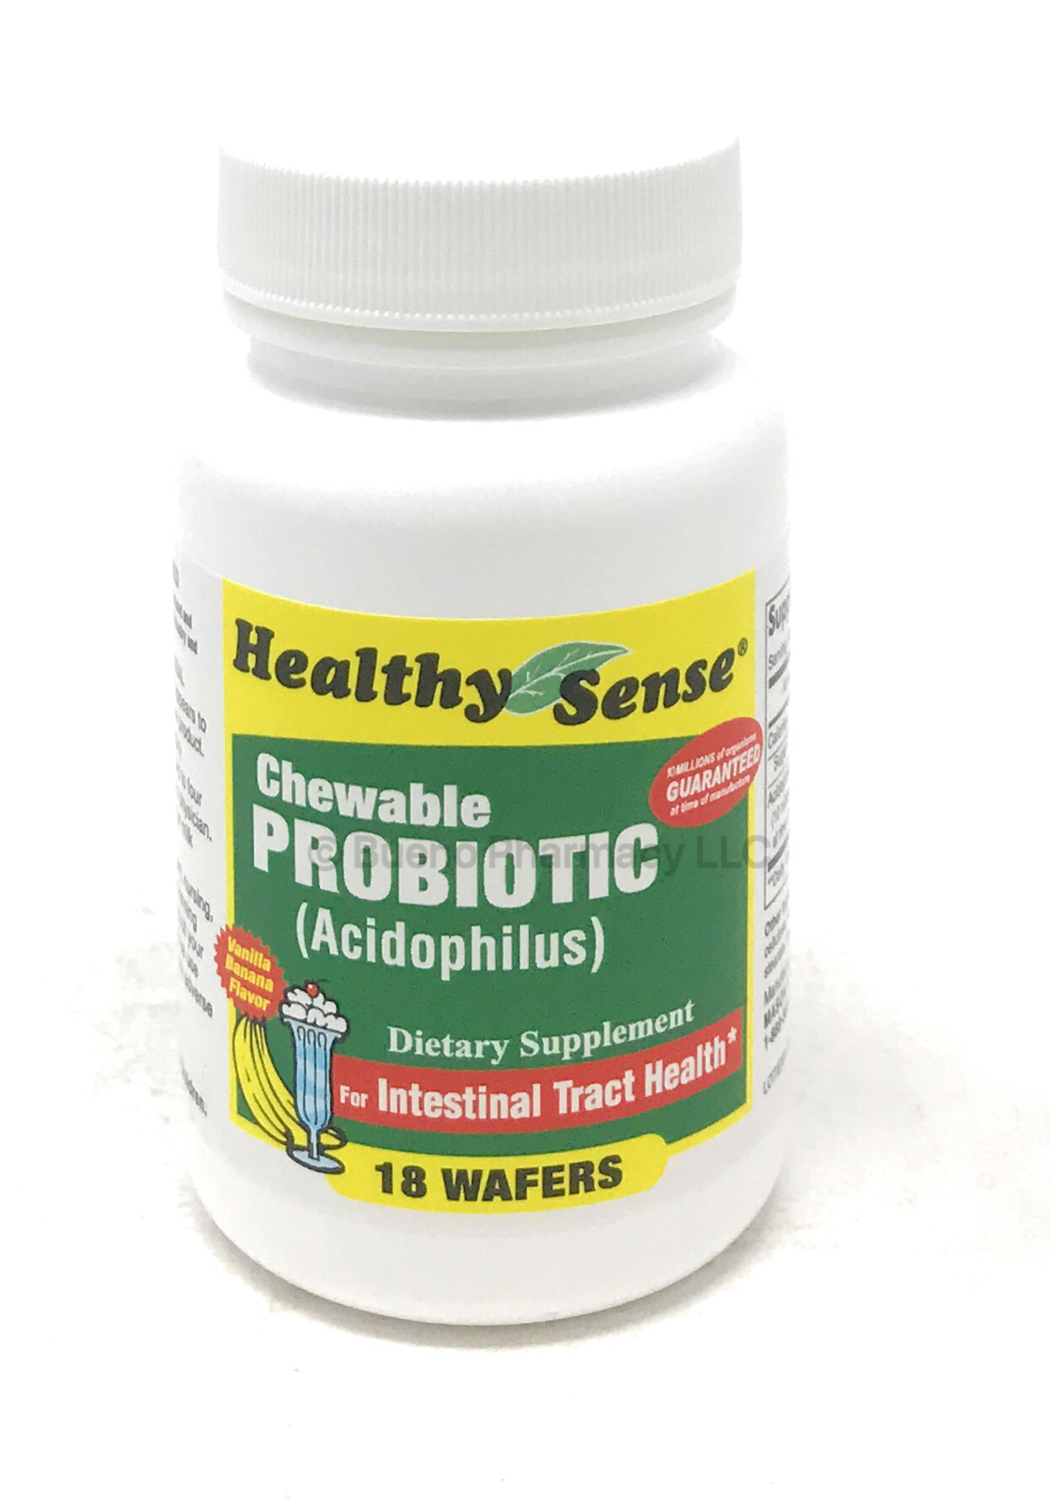 Healthy Sense Chewable Probiotic (acidophilus) 18 Wafers